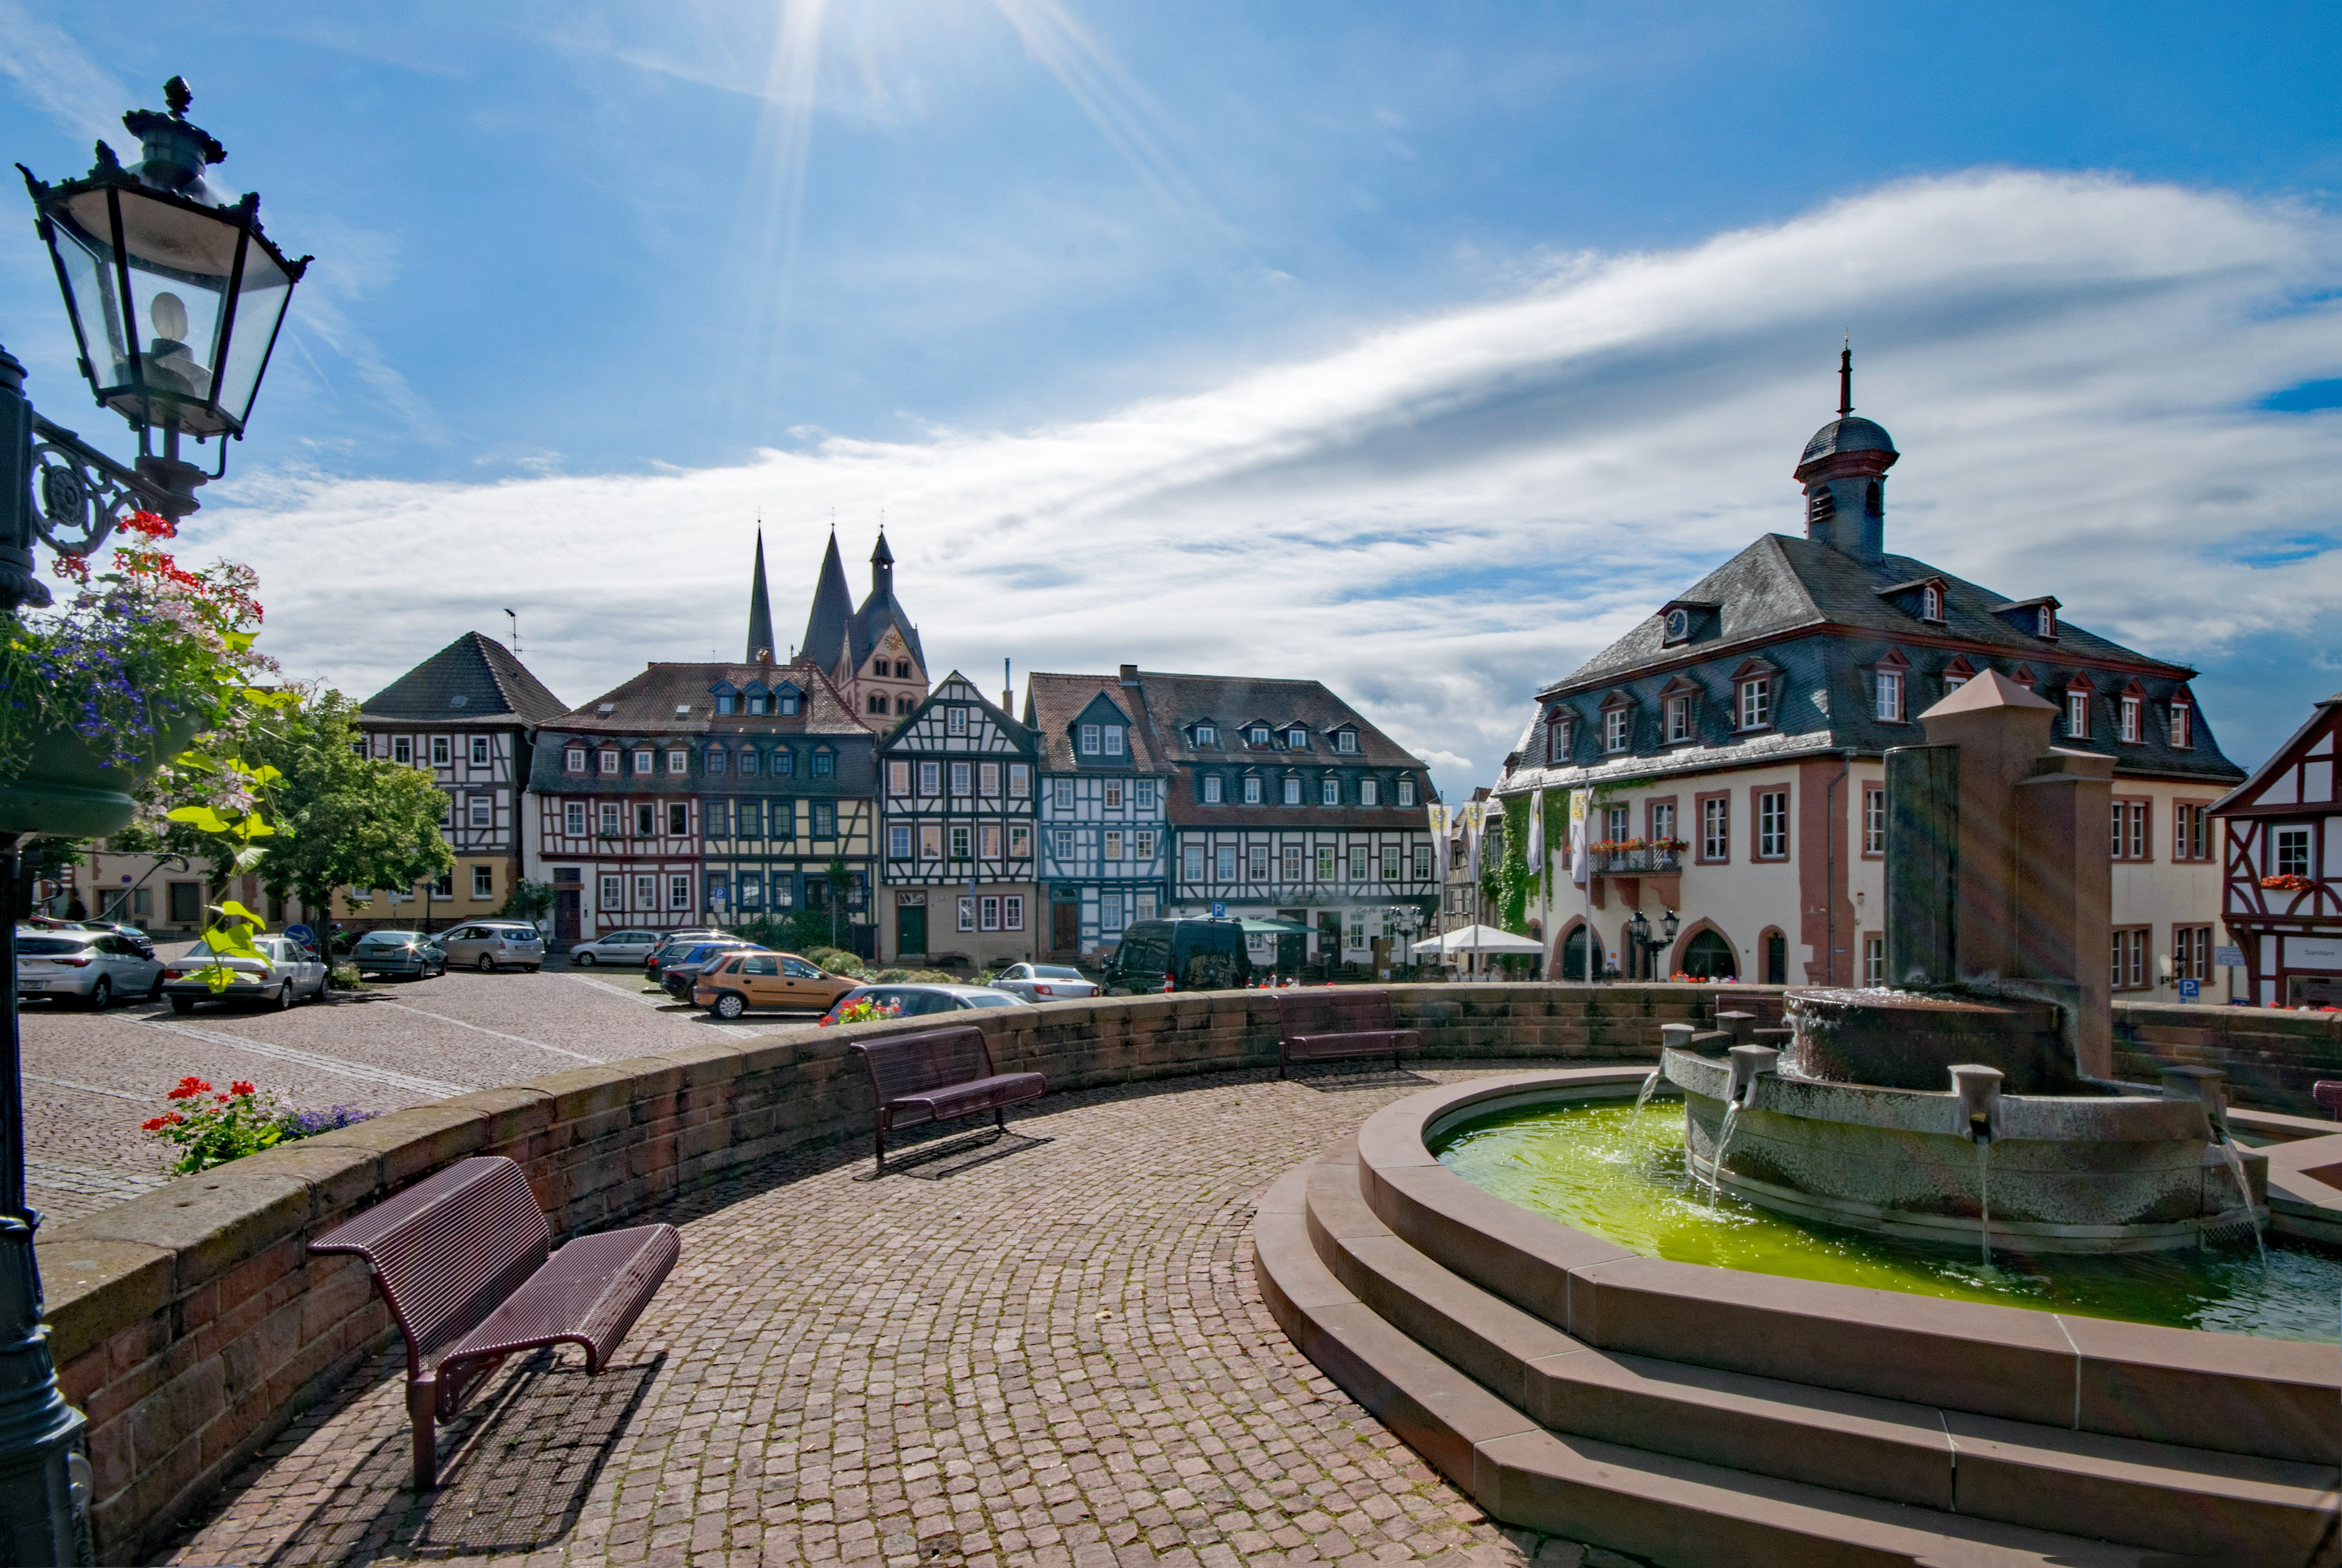 Free stock photo of building, architecture, germany, marketplace